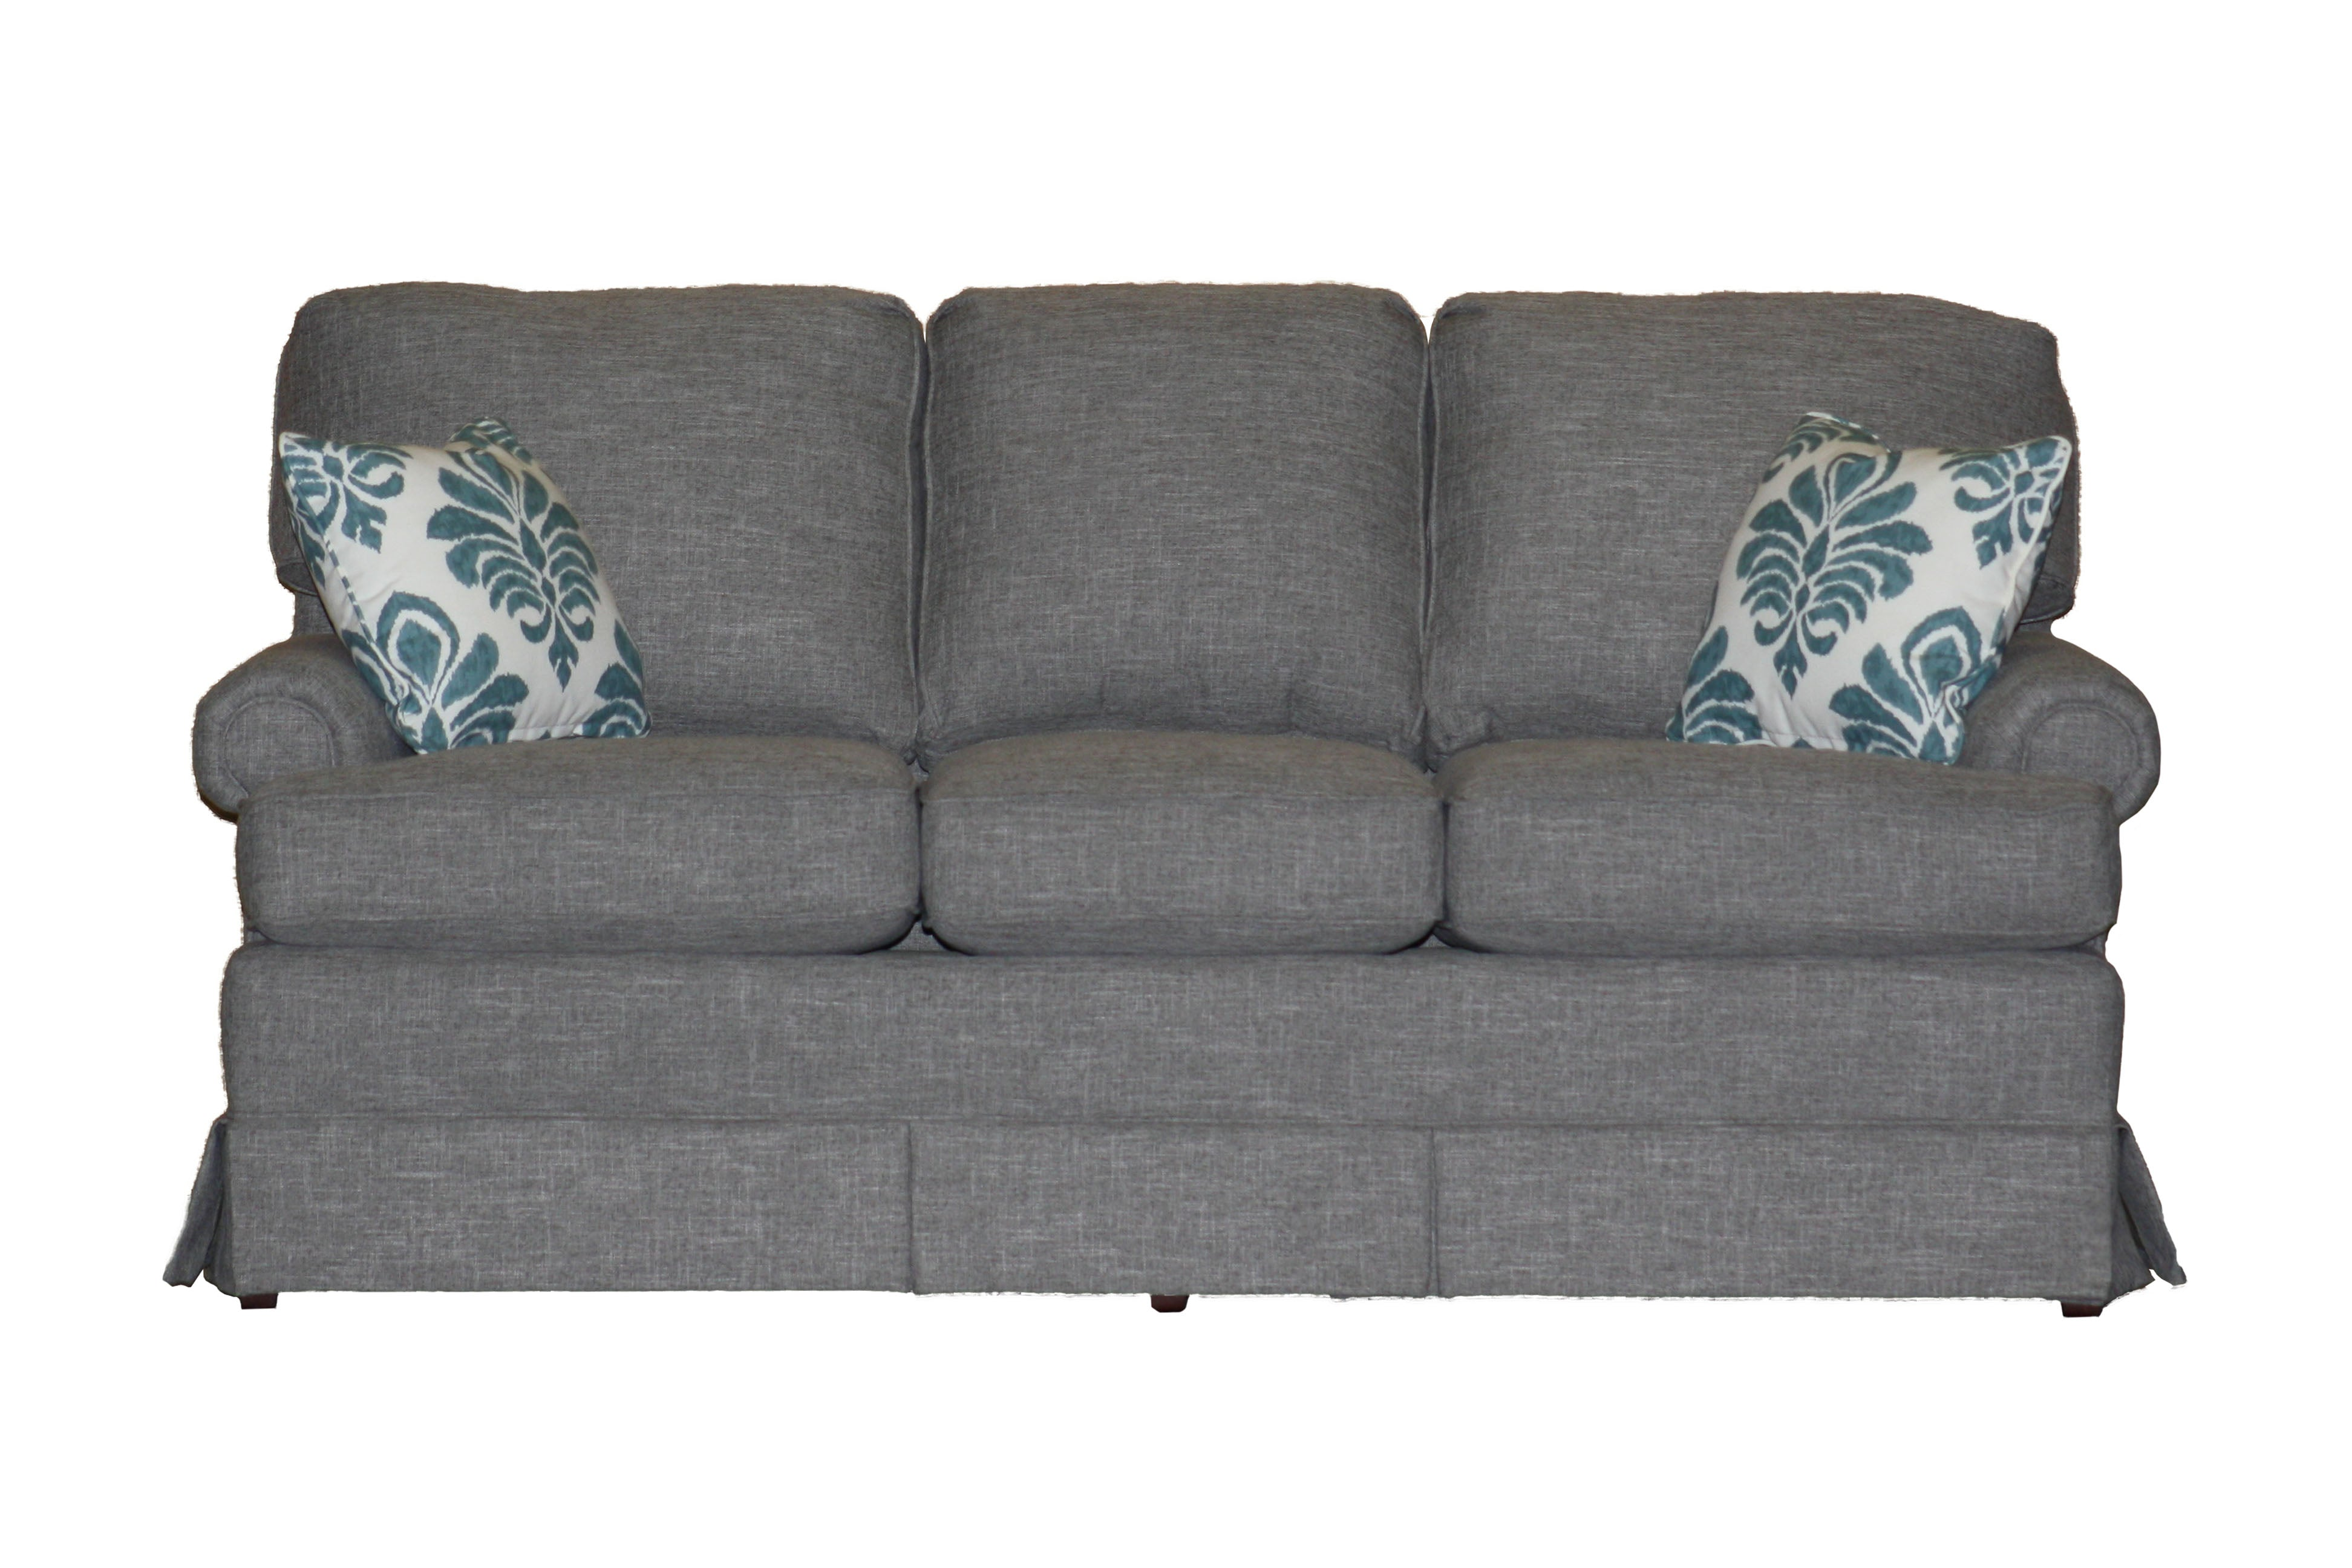 Terrific Non Toxic American Classic Panel Arm Skirted 74 Sofa At Cjindustries Chair Design For Home Cjindustriesco